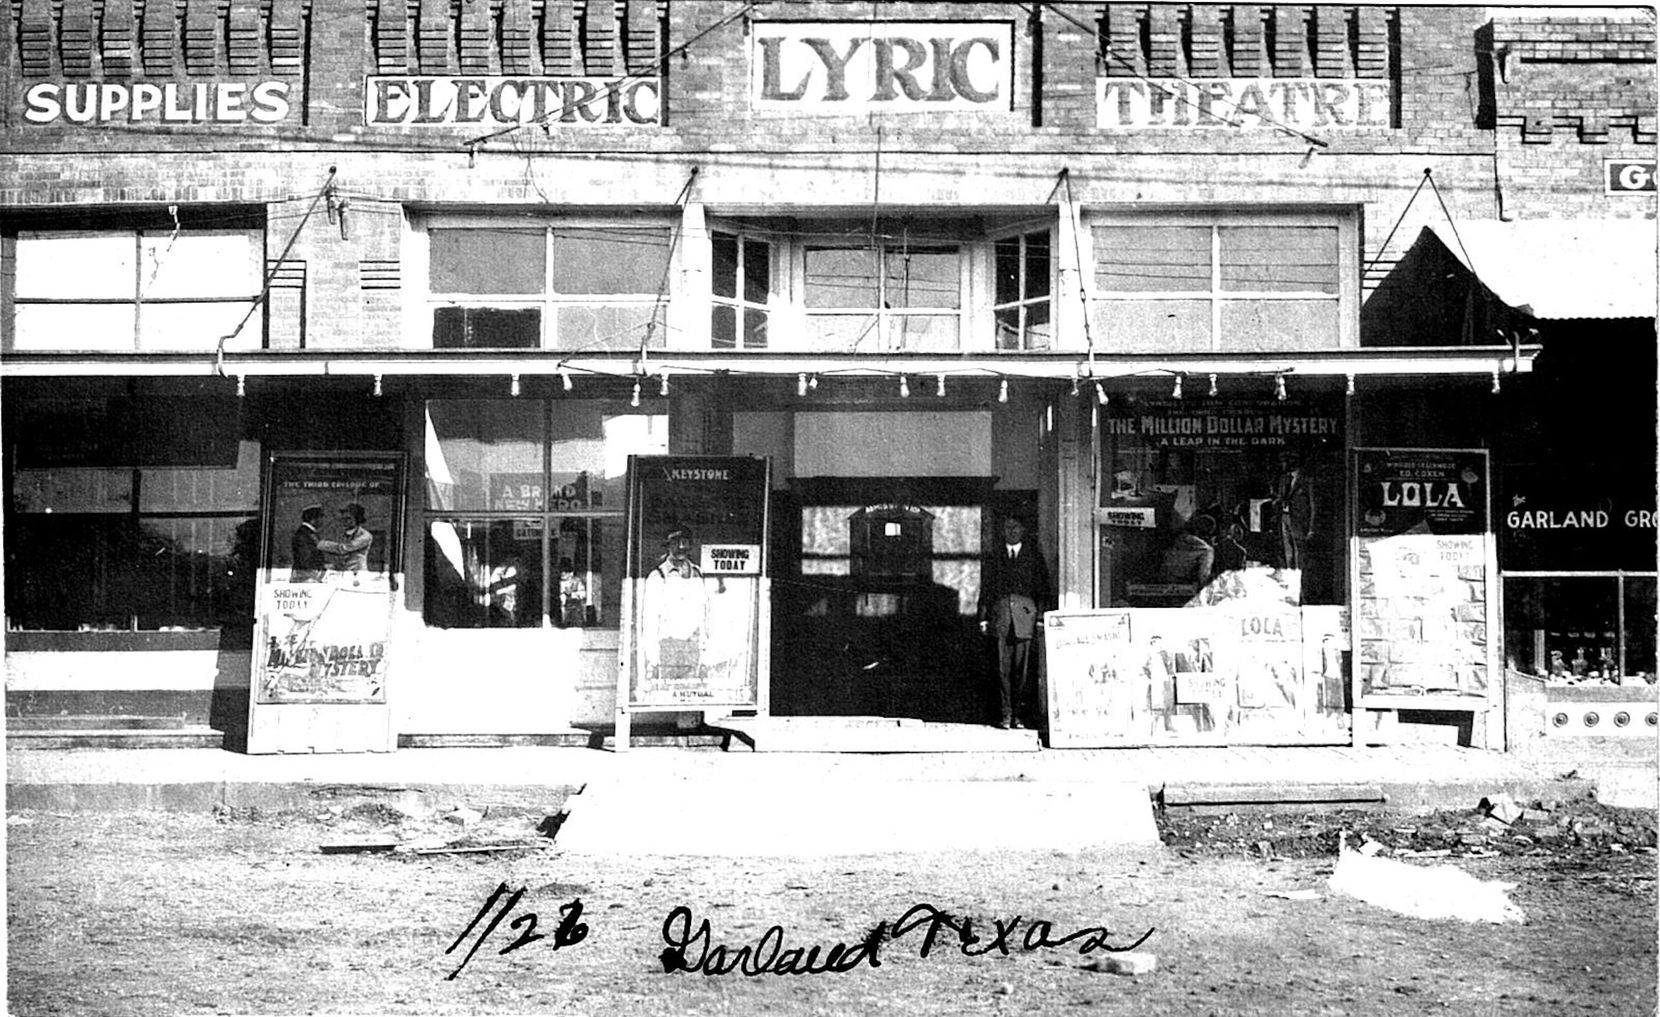 The Lyric Theatre opened in the Murphy building on the north side of Garland's downtown square in 1914. Tickets for the silent films shown in this photo from the Garland Landmark Society Archives were 10 cents each.